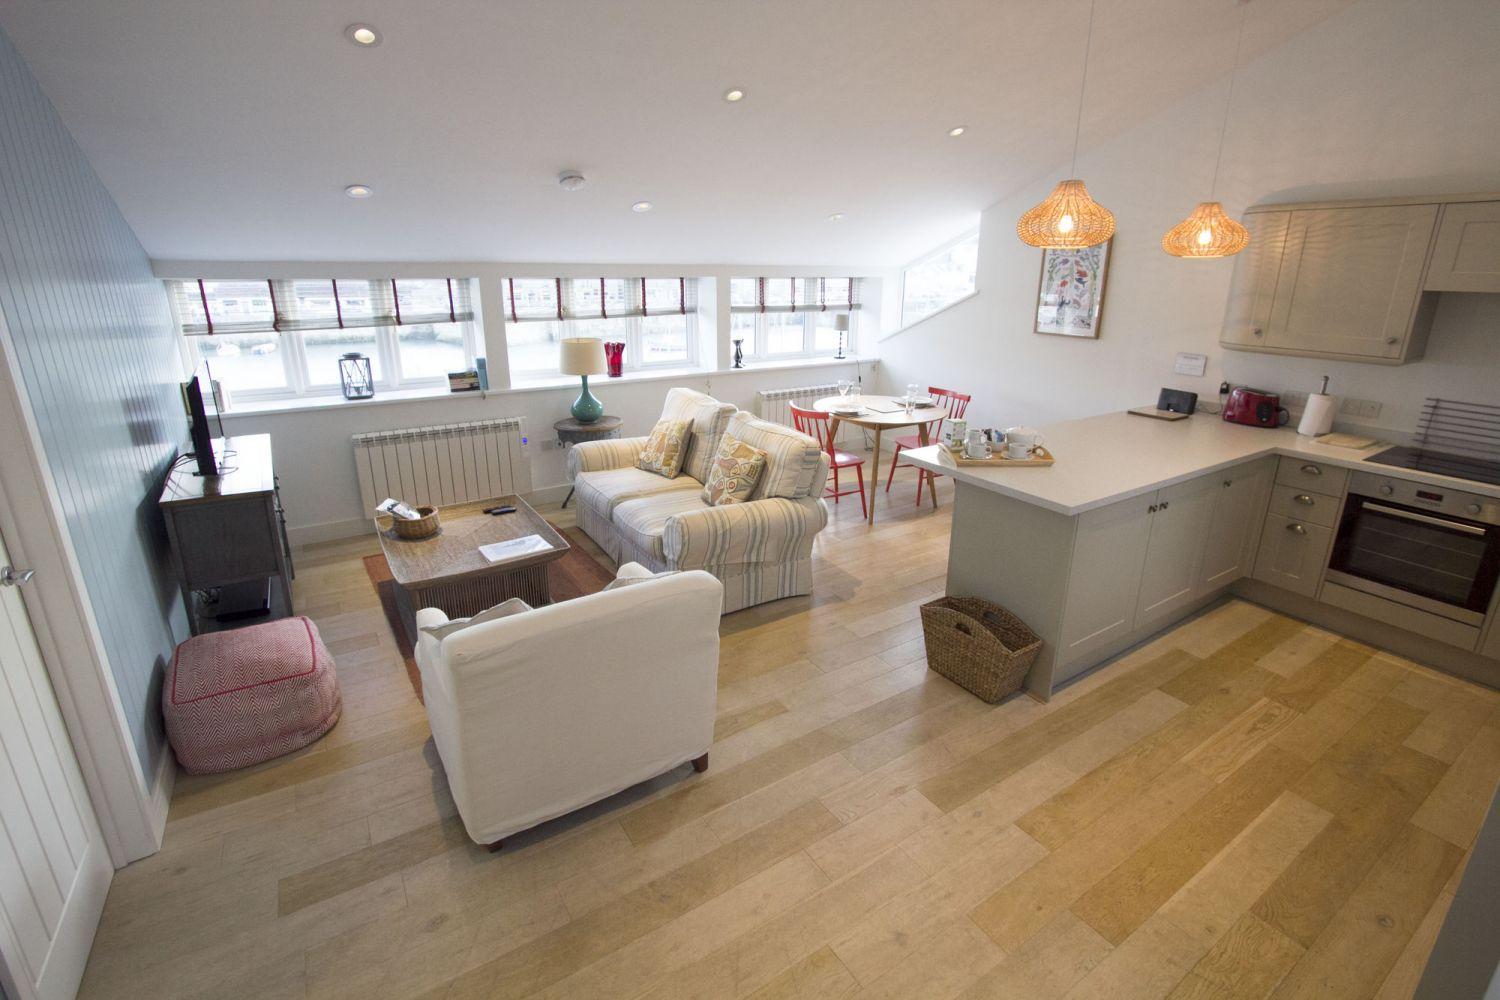 Sandpiper - Porthleven Holiday cottages